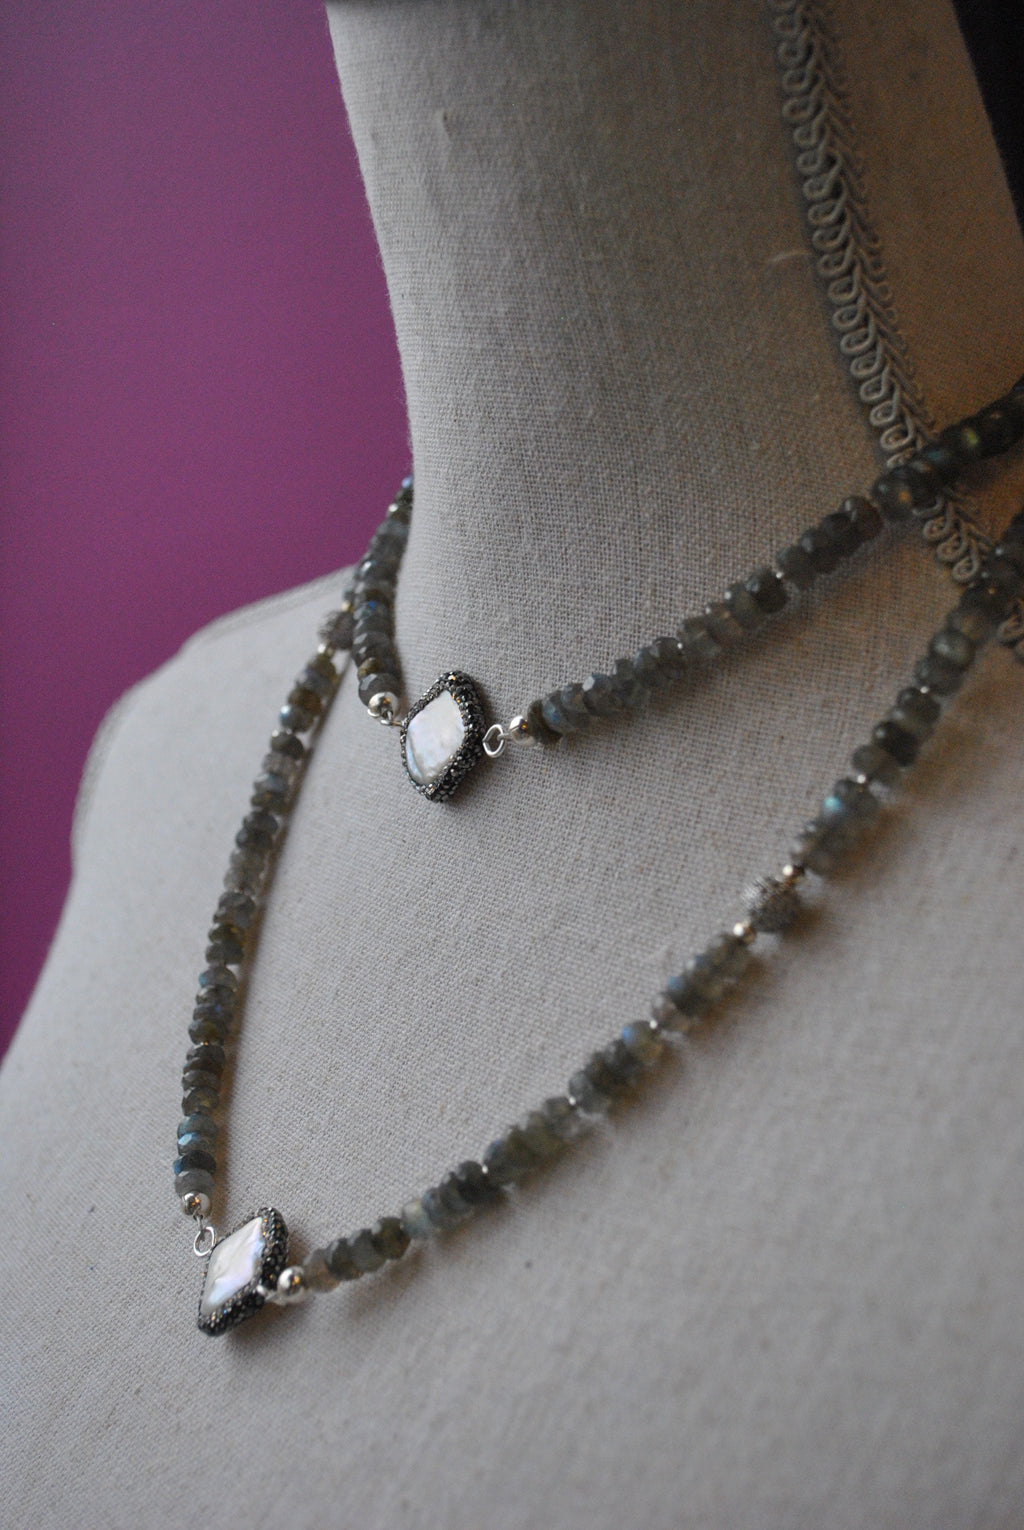 LABRADORITE AND MOTHER OF PEARLS LONG NECKLACE OR A WRAP BRACELET